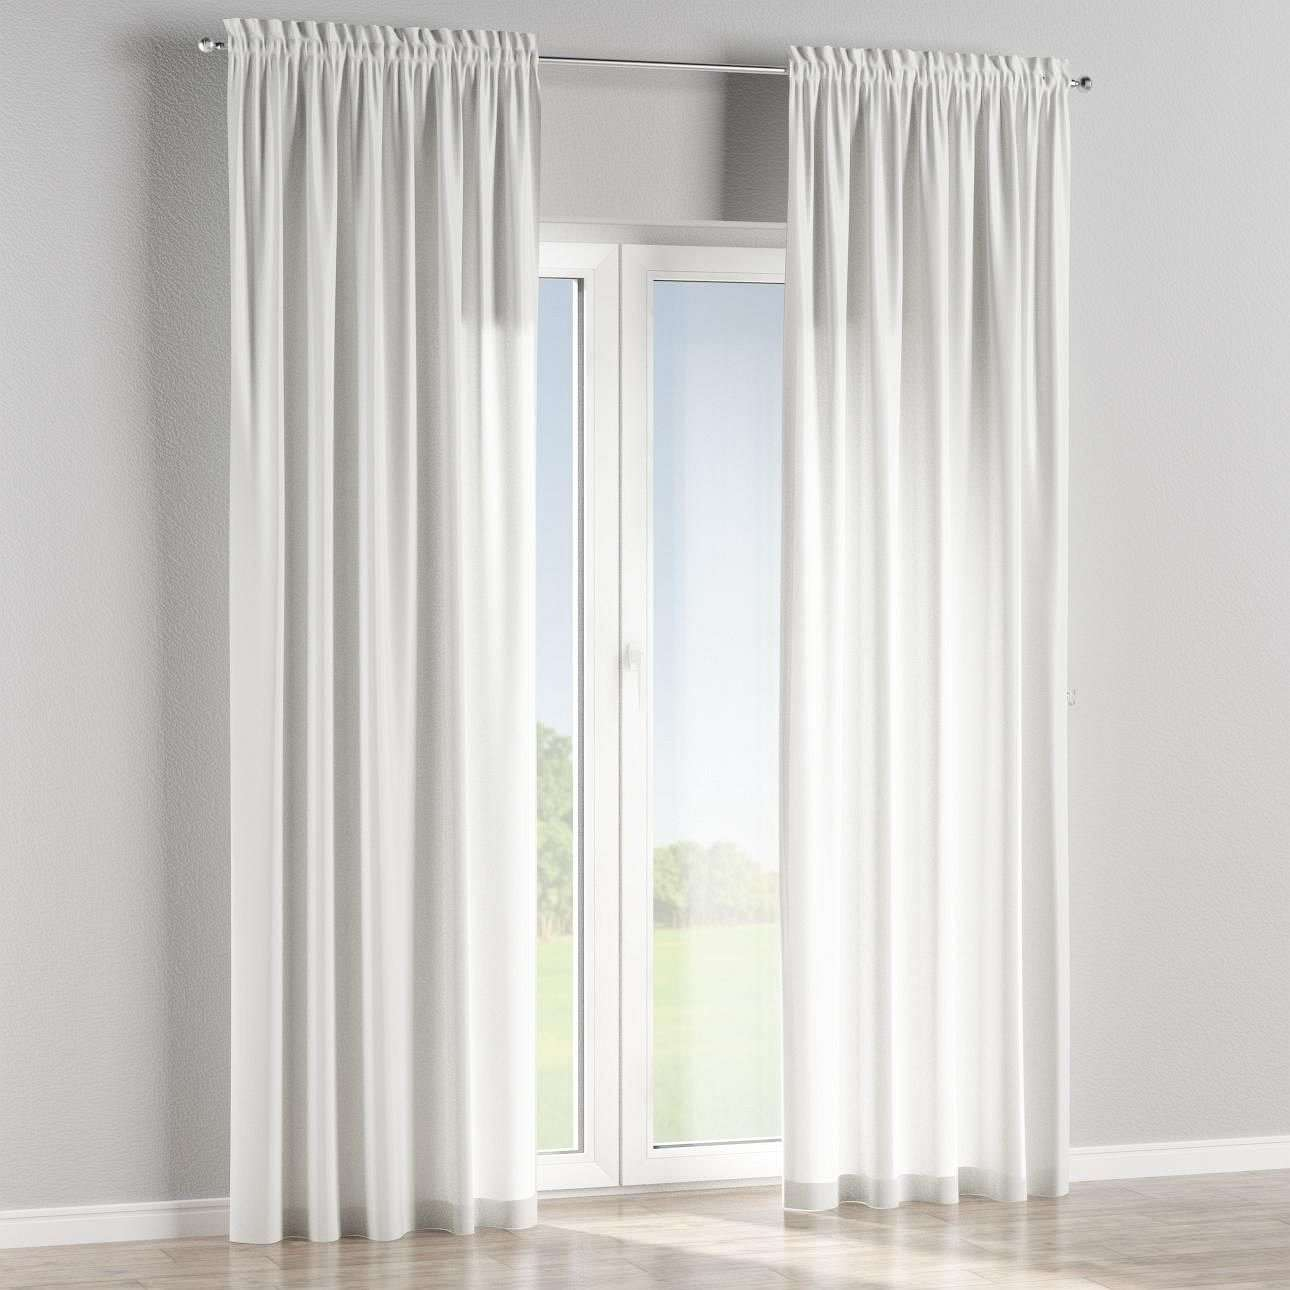 Slot and frill lined curtains in collection Ashley, fabric: 137-45